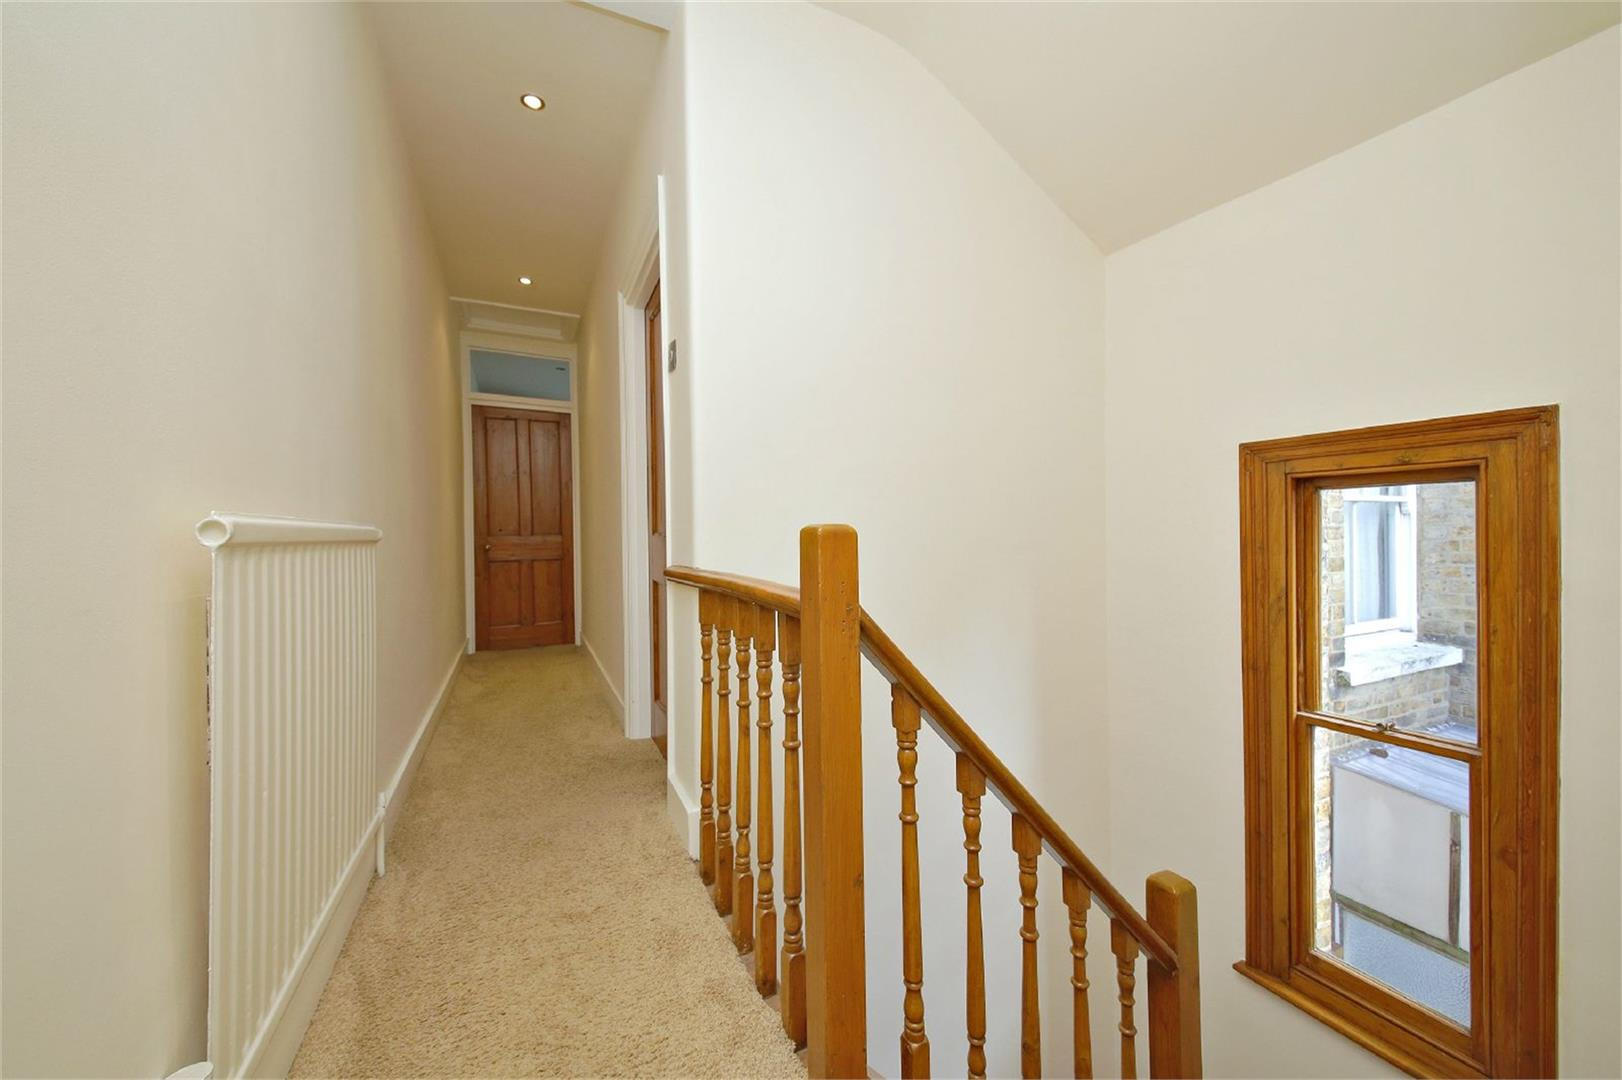 2 bed to rent in Letchmore Heath - (Property Image 4)